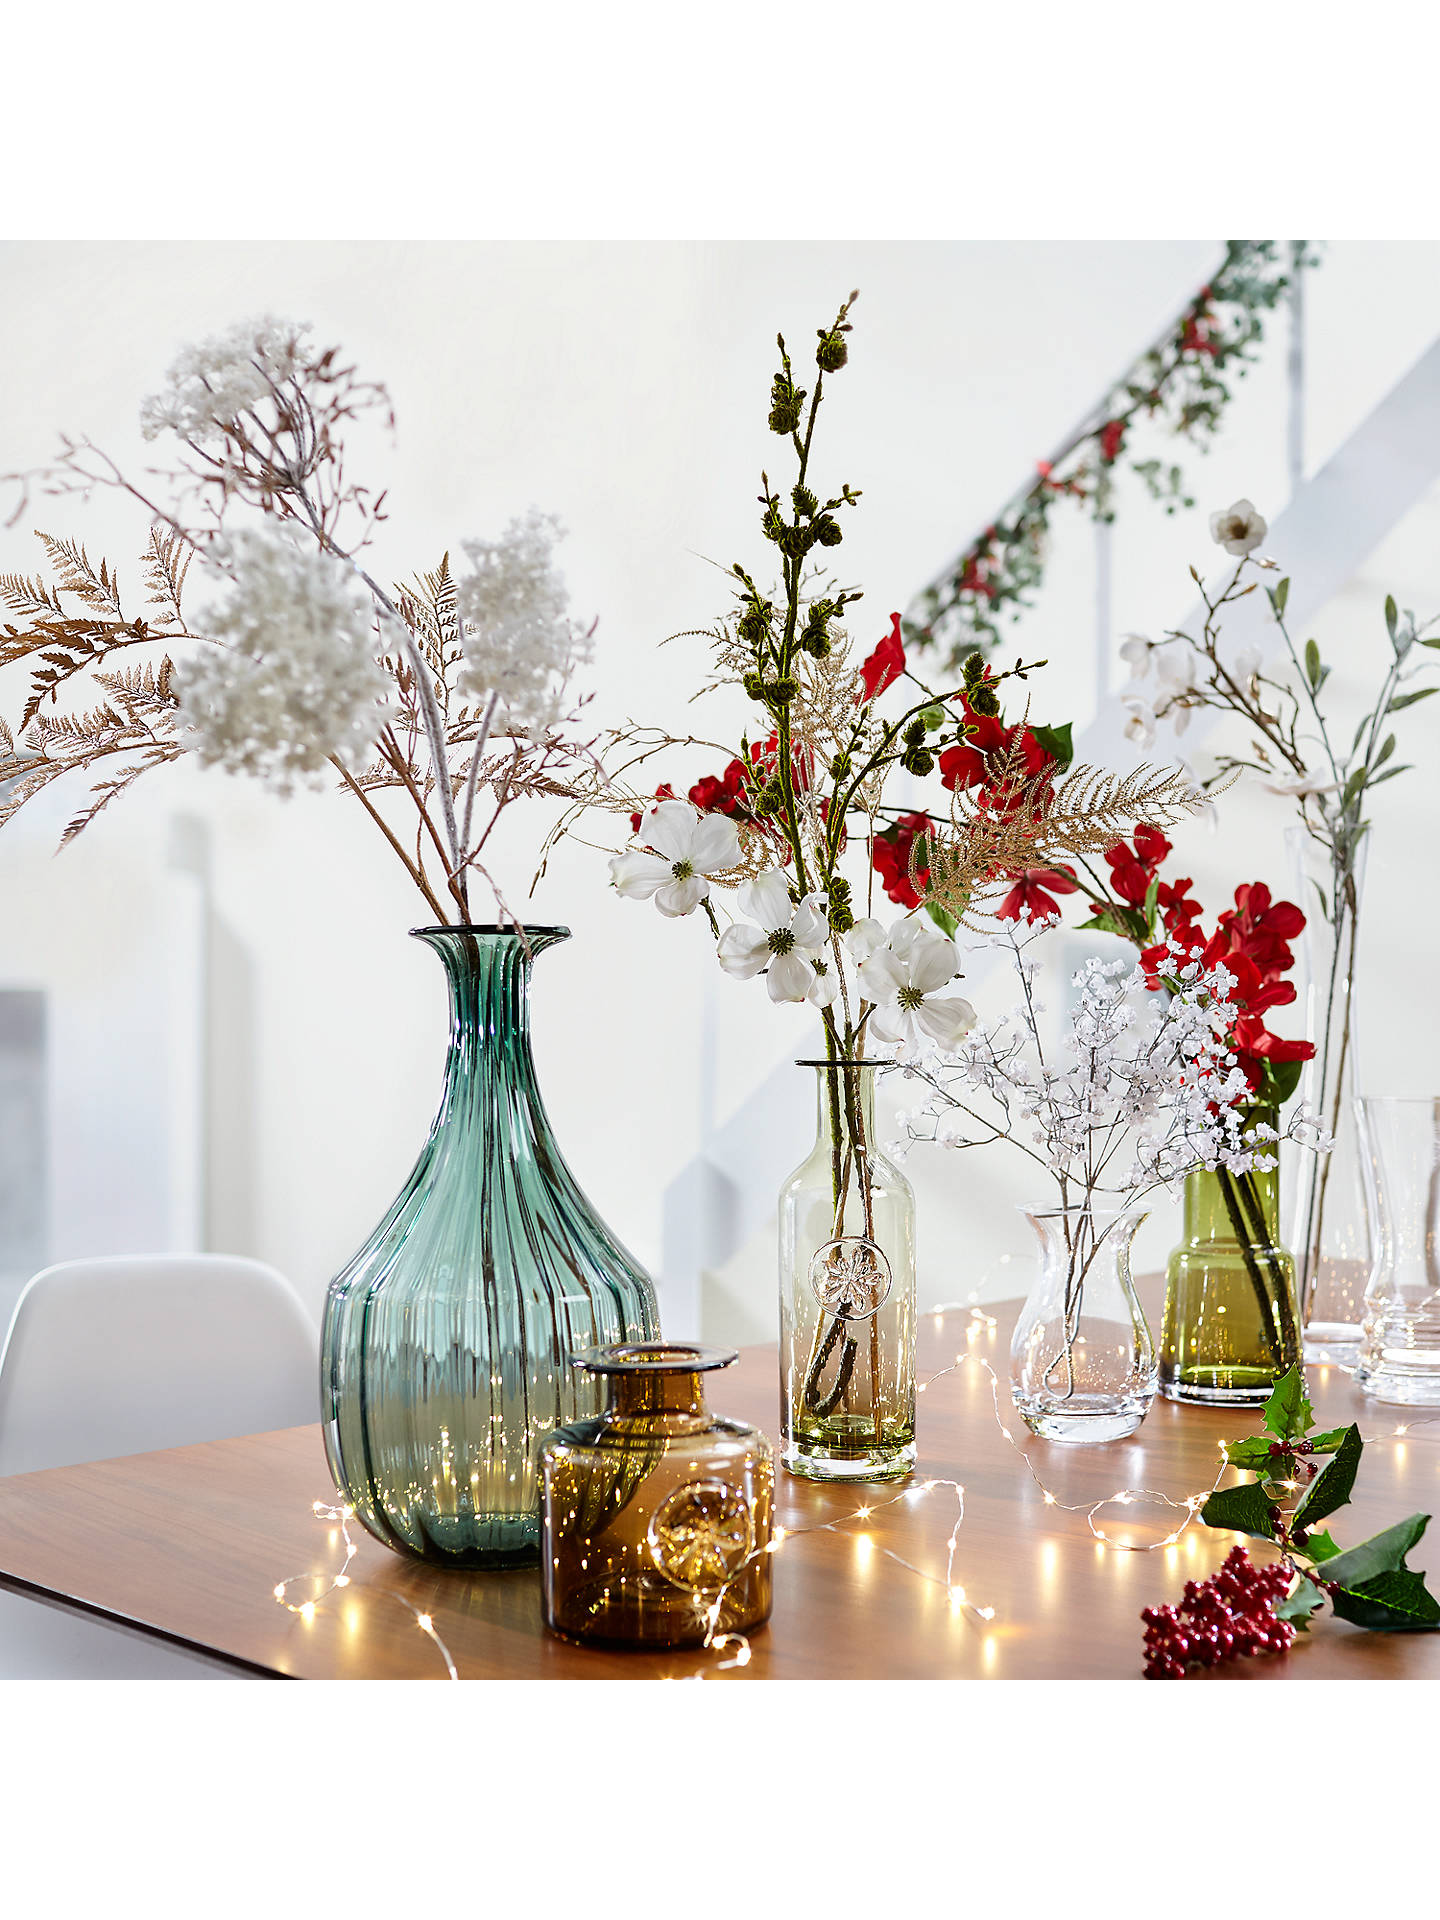 BuyJohn Lewis Winter Palace Asparagus Fern Spray, Silver Online at johnlewis.com